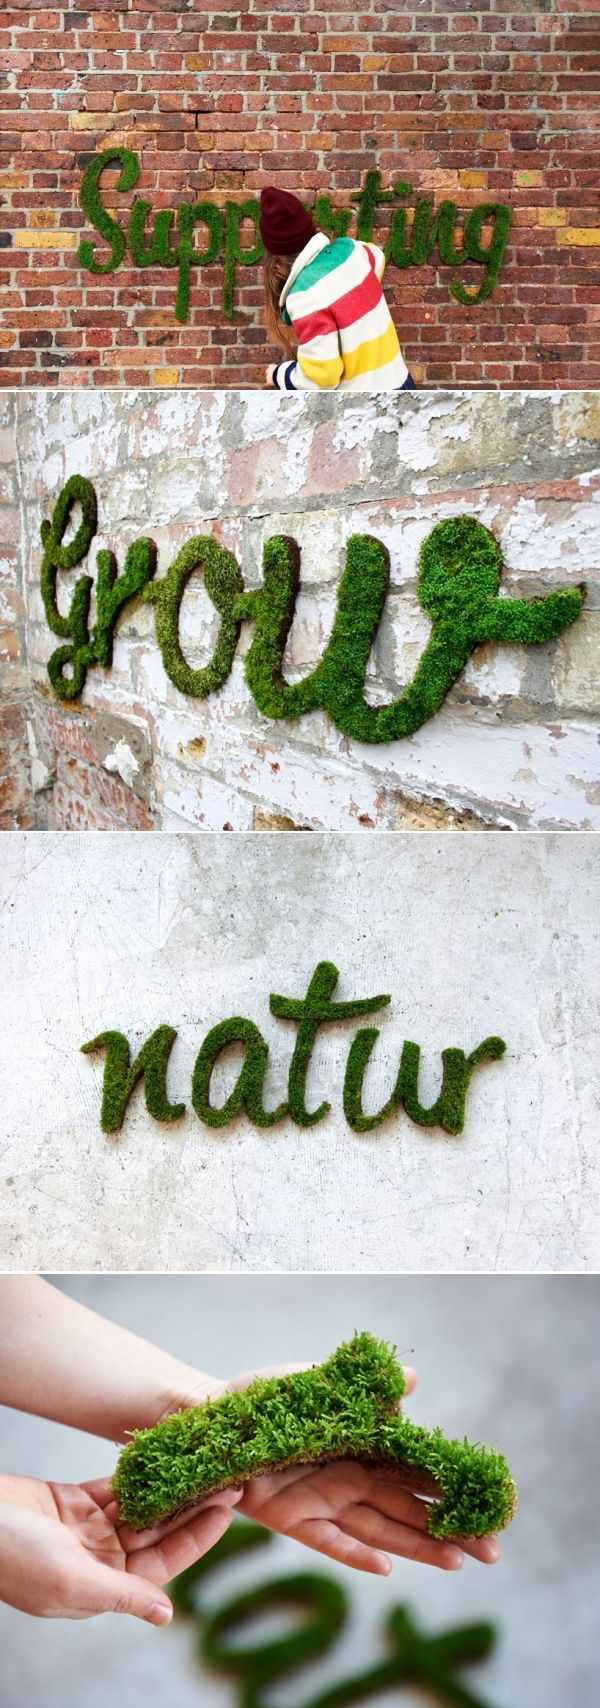 """Cool idea to do in the garden but with fake moss. """"moss graffiti grows on walls…"""